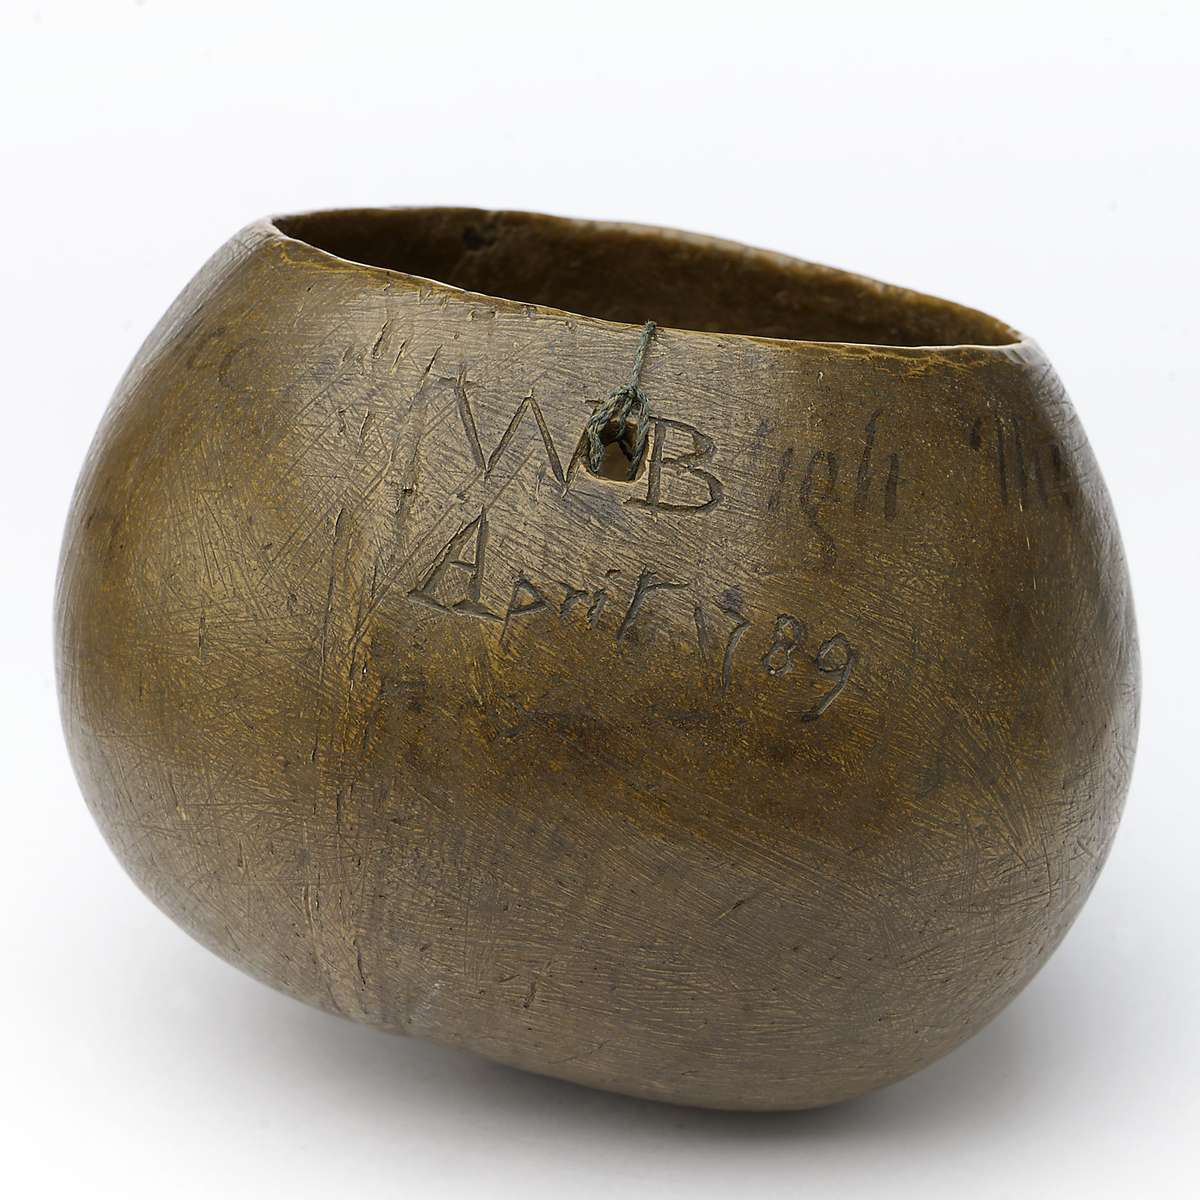 Bligh Coconut Bowl -®National Maritime Museum, London